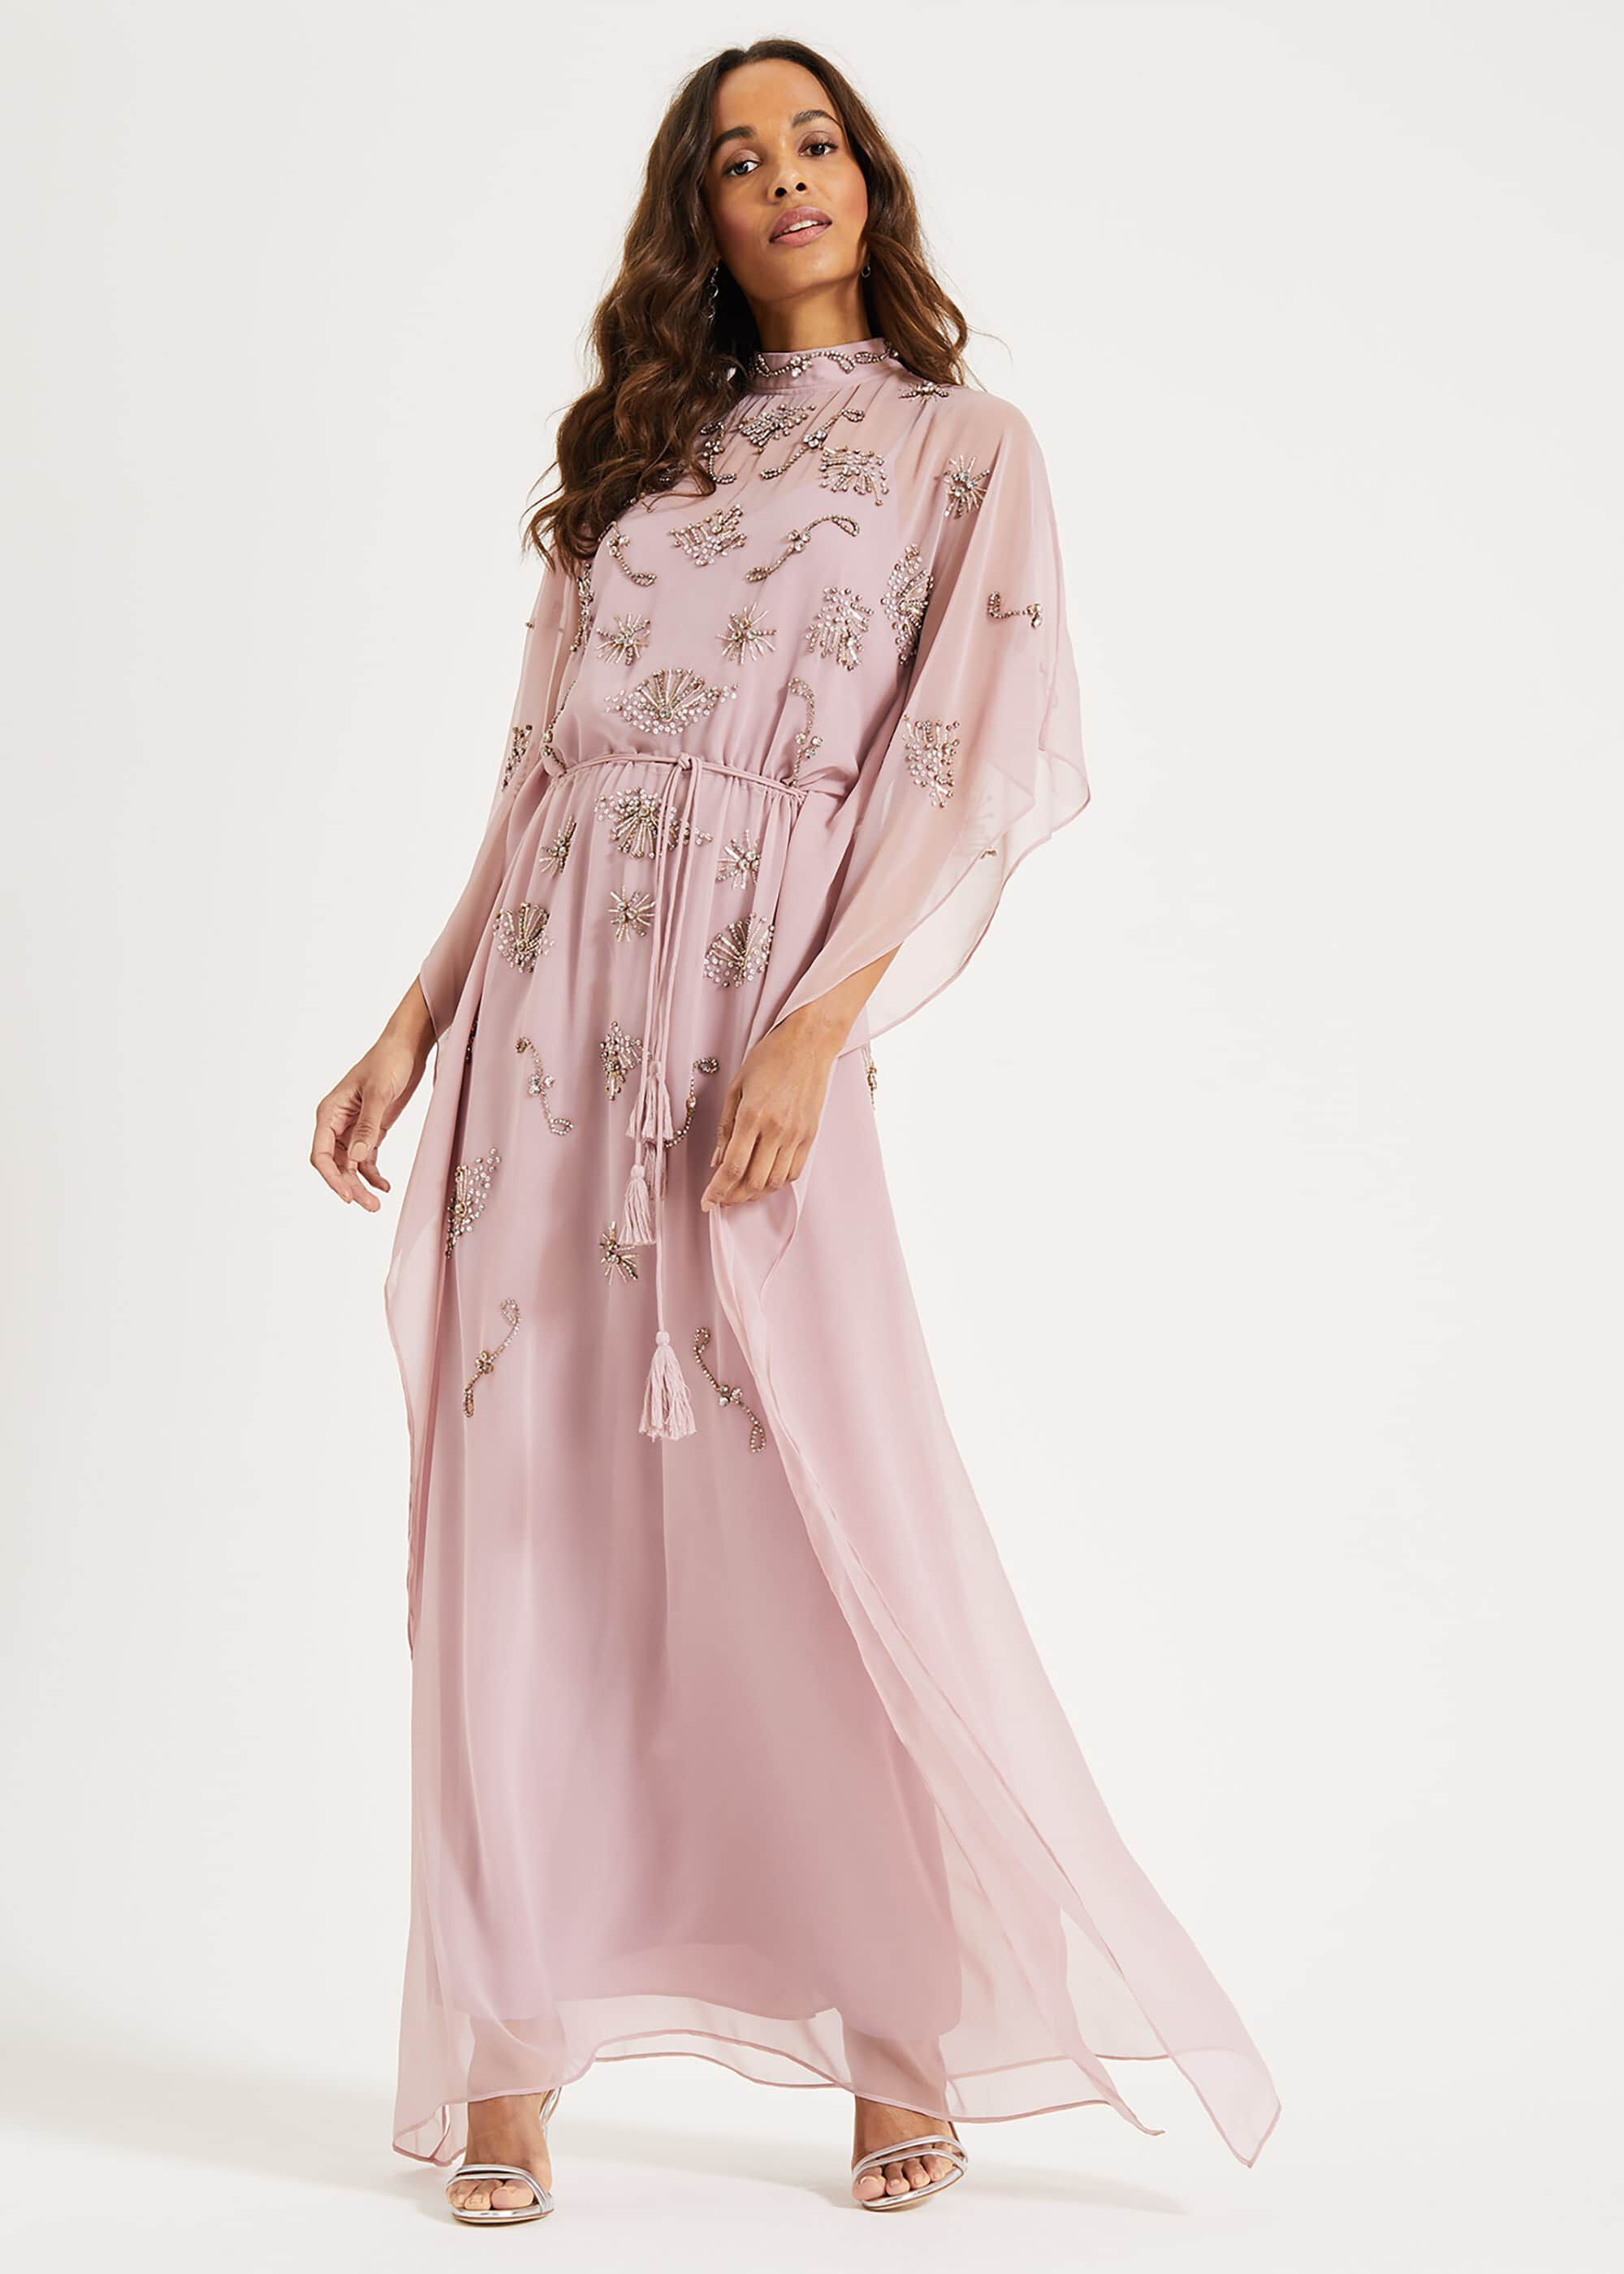 Phase Eight Sairah Kimono Maxi Dress, Pink, Maxi